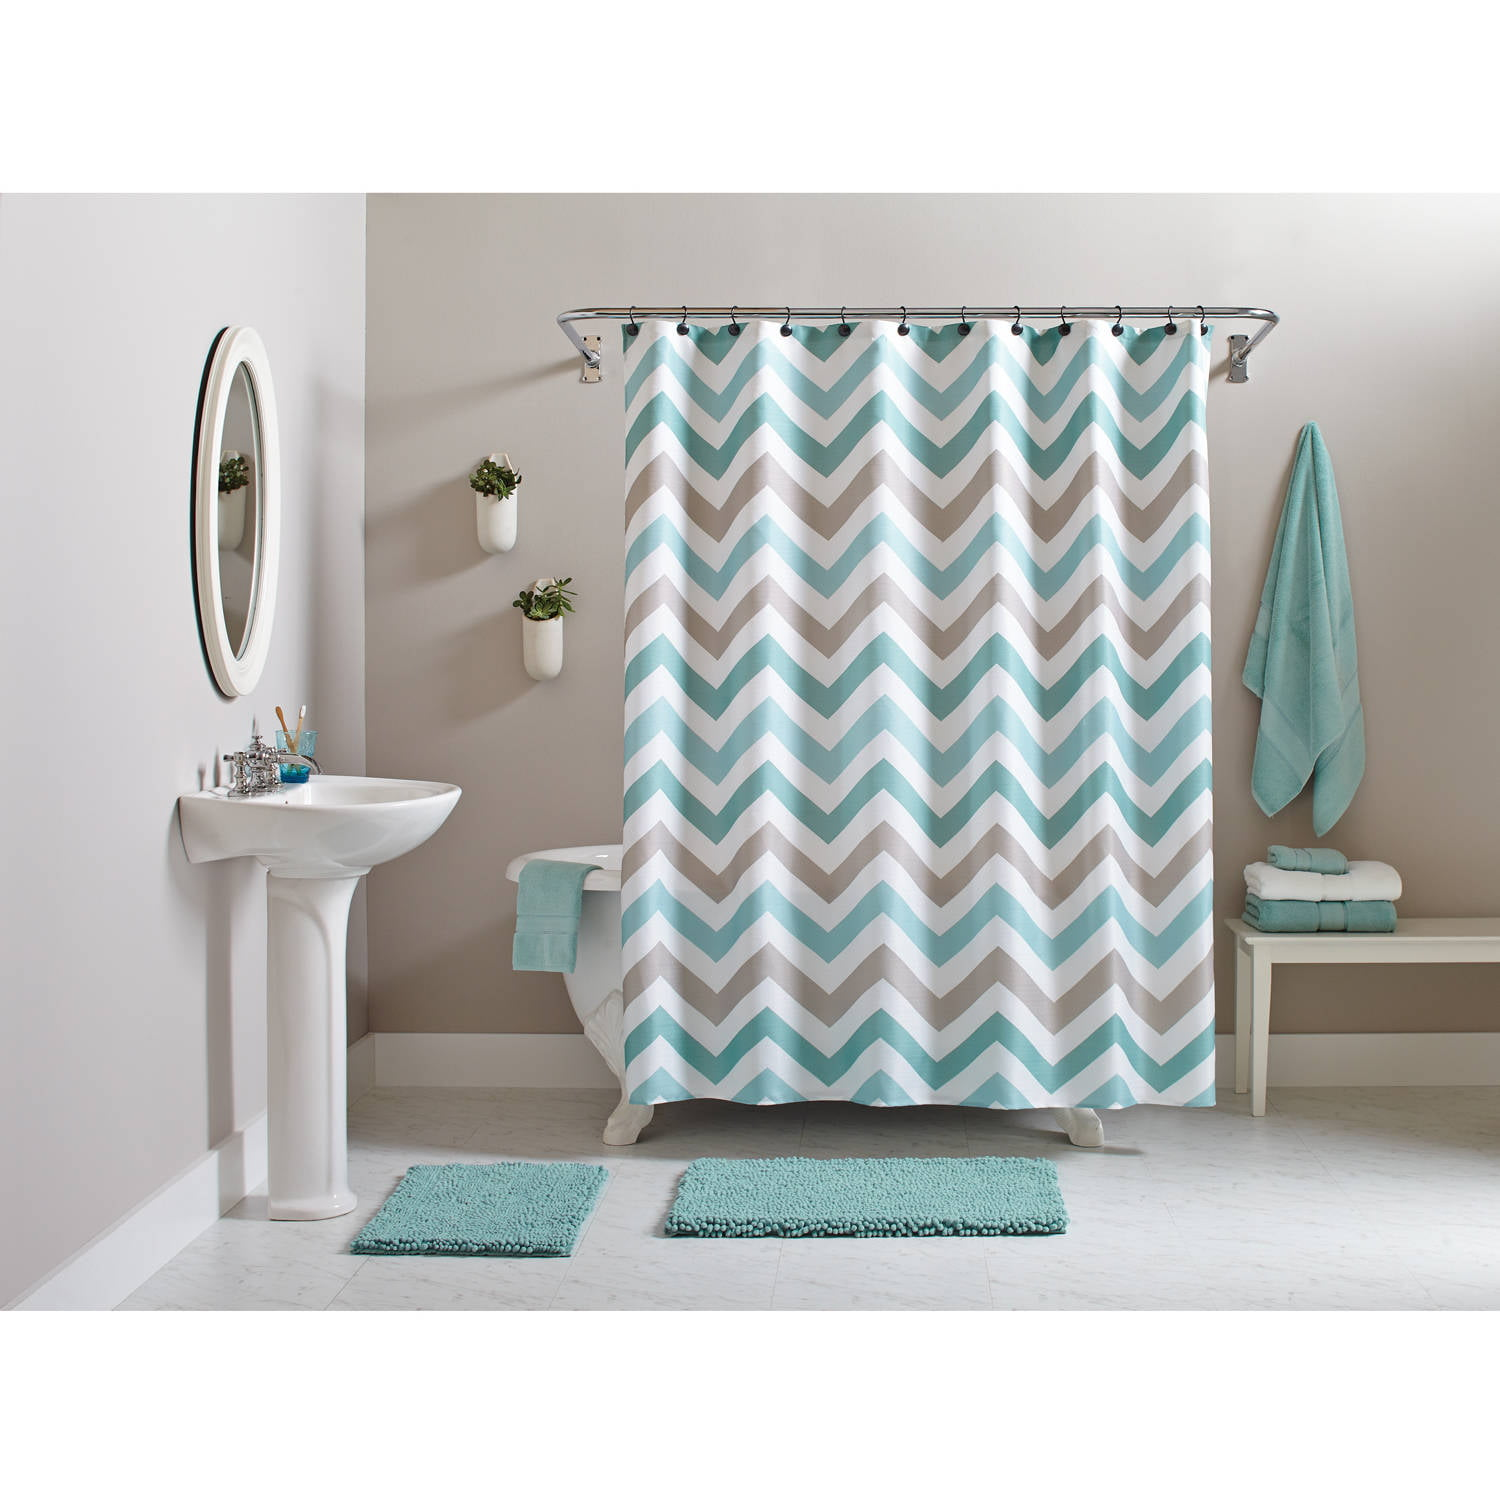 Bathroom sets walmart - Better Homes And Gardens Chevron 15 Piece Bath Set Teal Brown Walmart Com